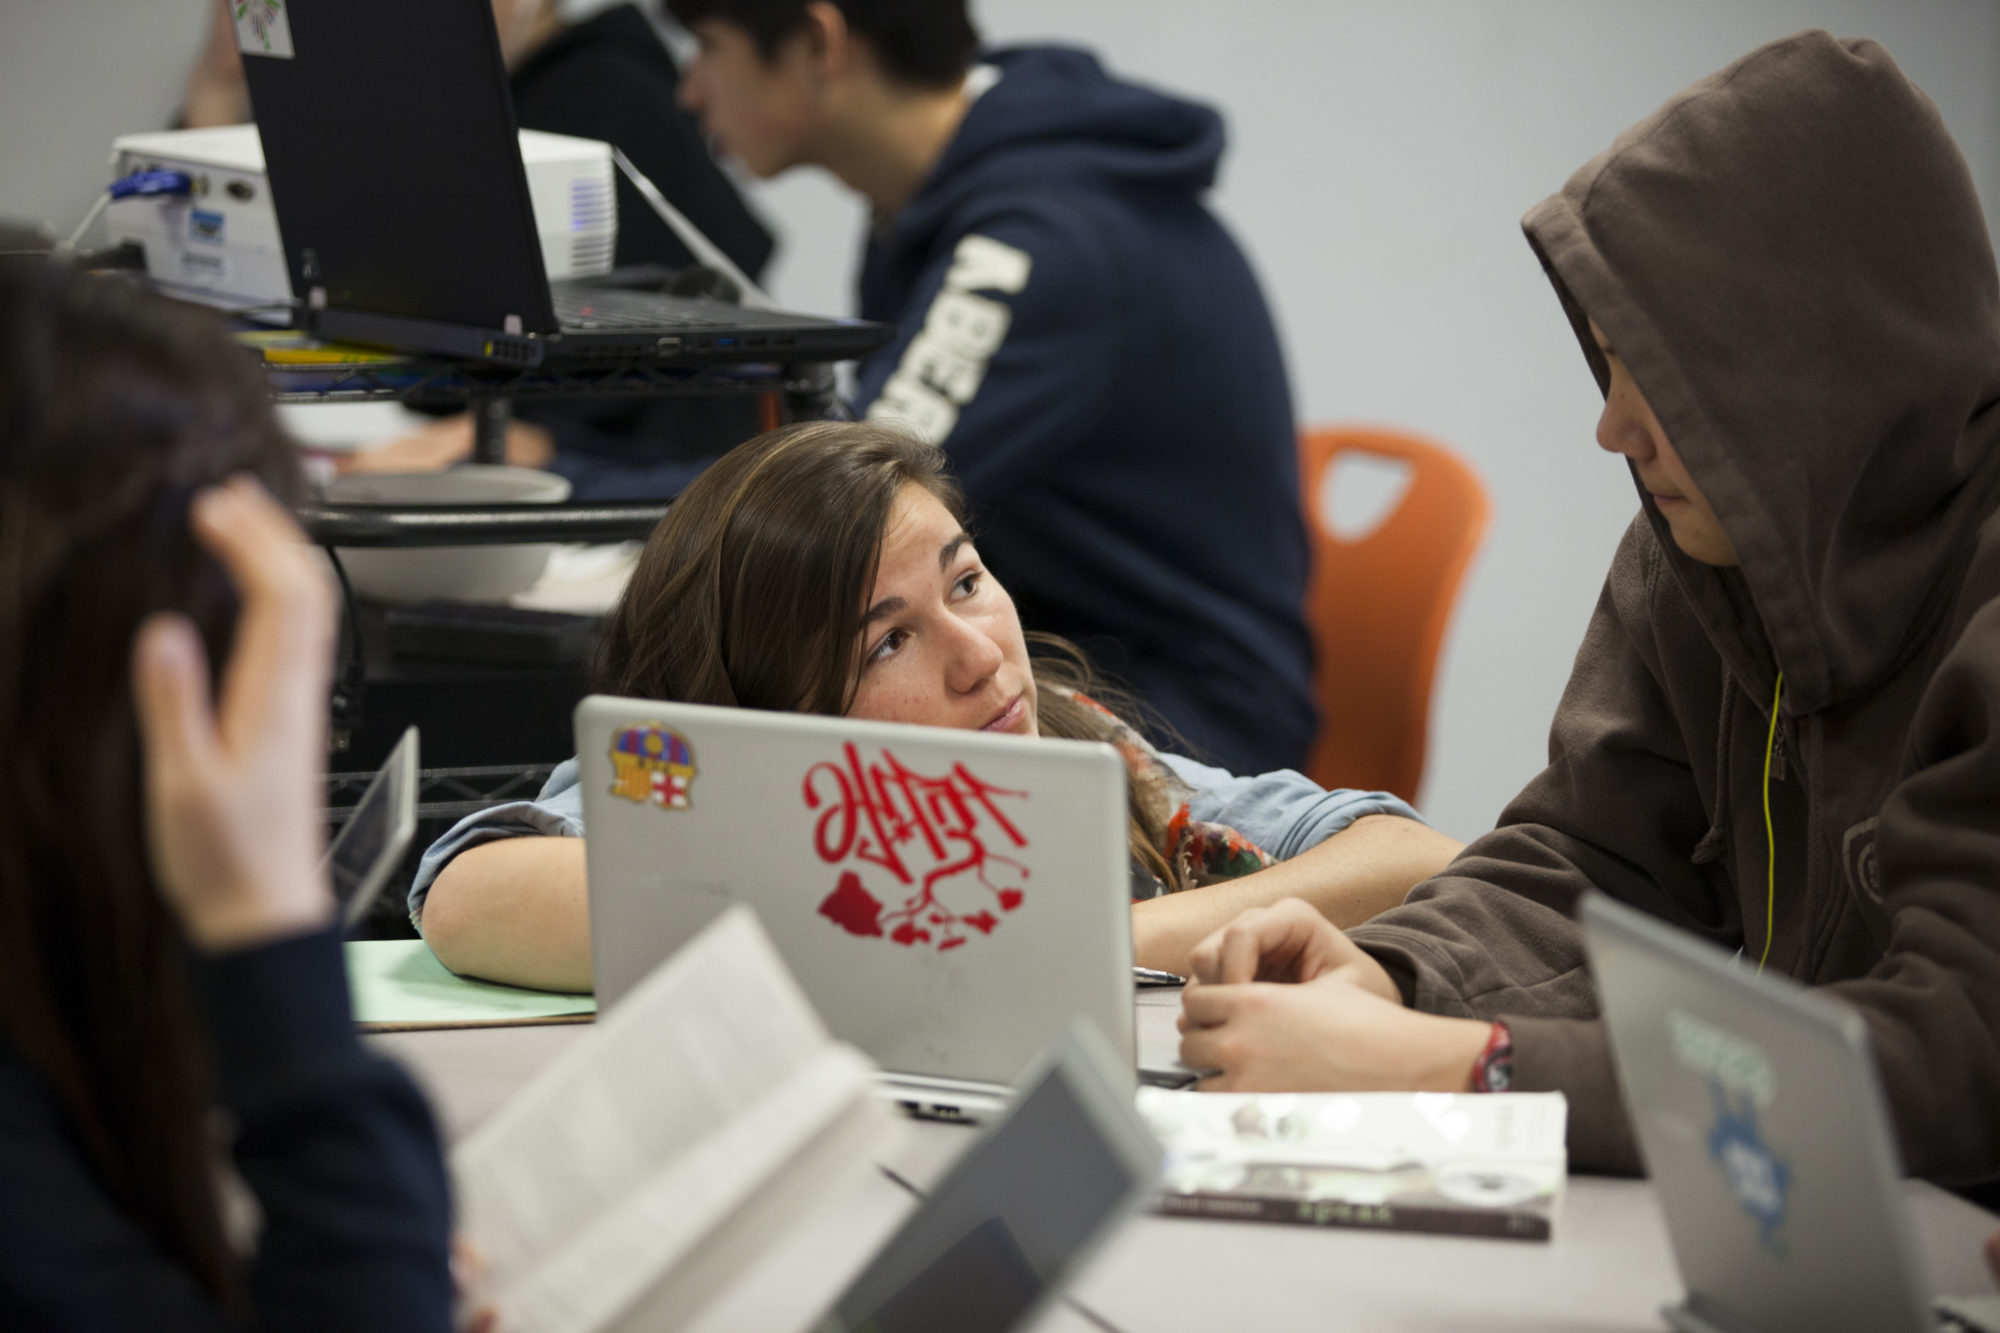 English teacher Adelaide Giornelli works with ninth grade students on computers at Shasta charter public high school, part of the Summit public school system. (Photo by Melanie Stetson Freeman/The Christian Science Monitor via Getty Images)